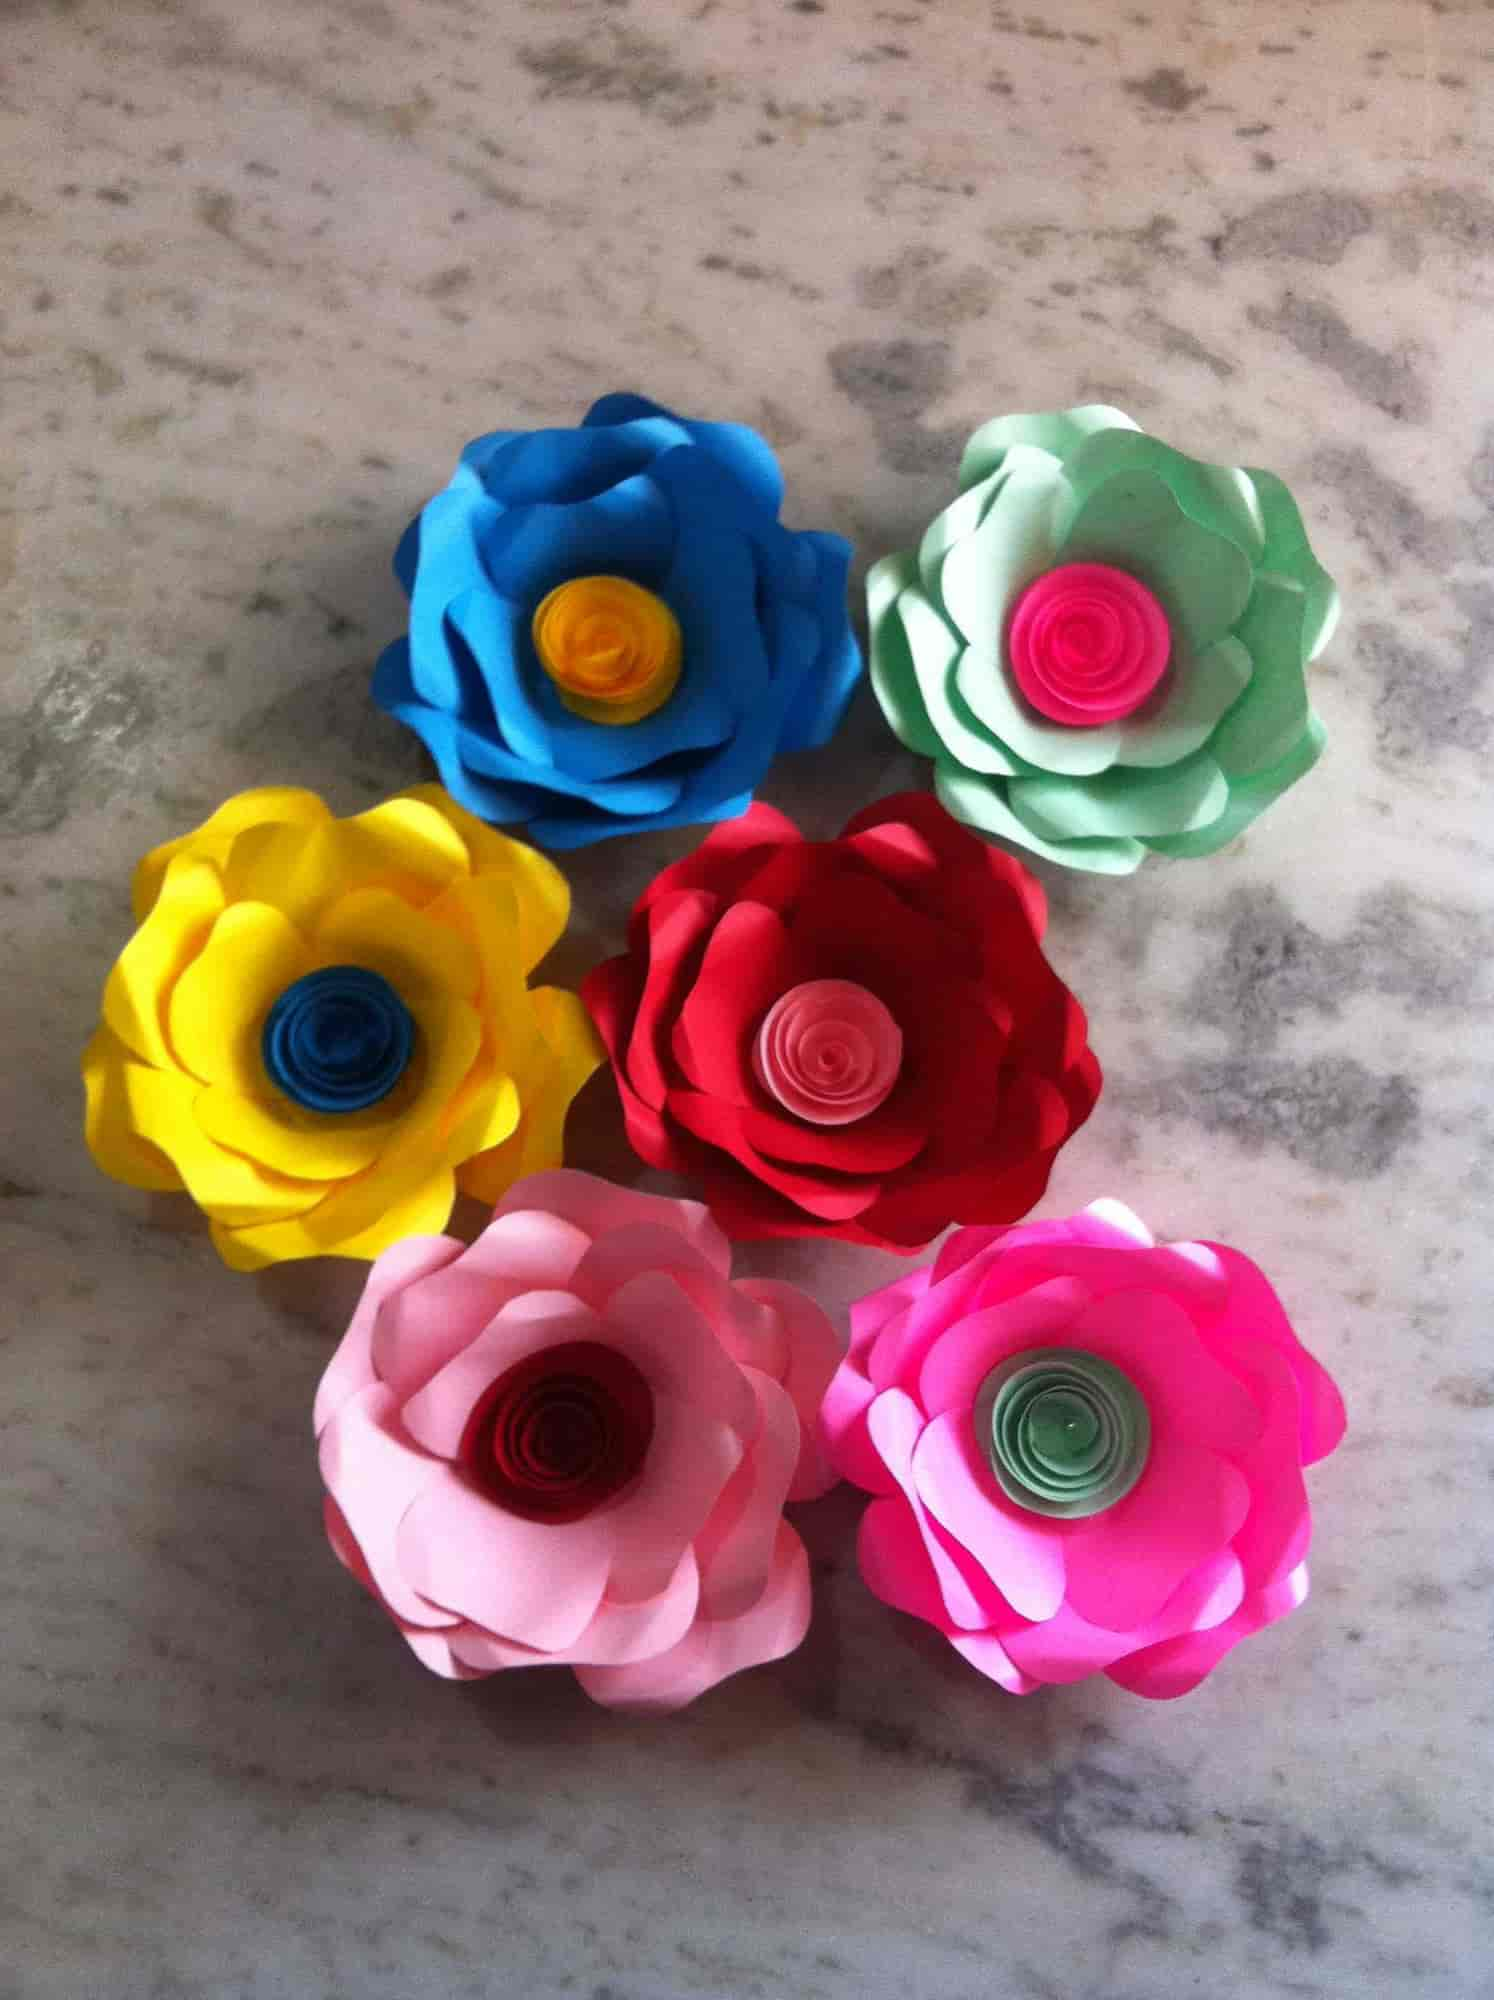 Hiranya origami paper flowers and crafts uppal paper flower hiranya origami paper flowers and crafts uppal paper flower distributors in hyderabad justdial mightylinksfo